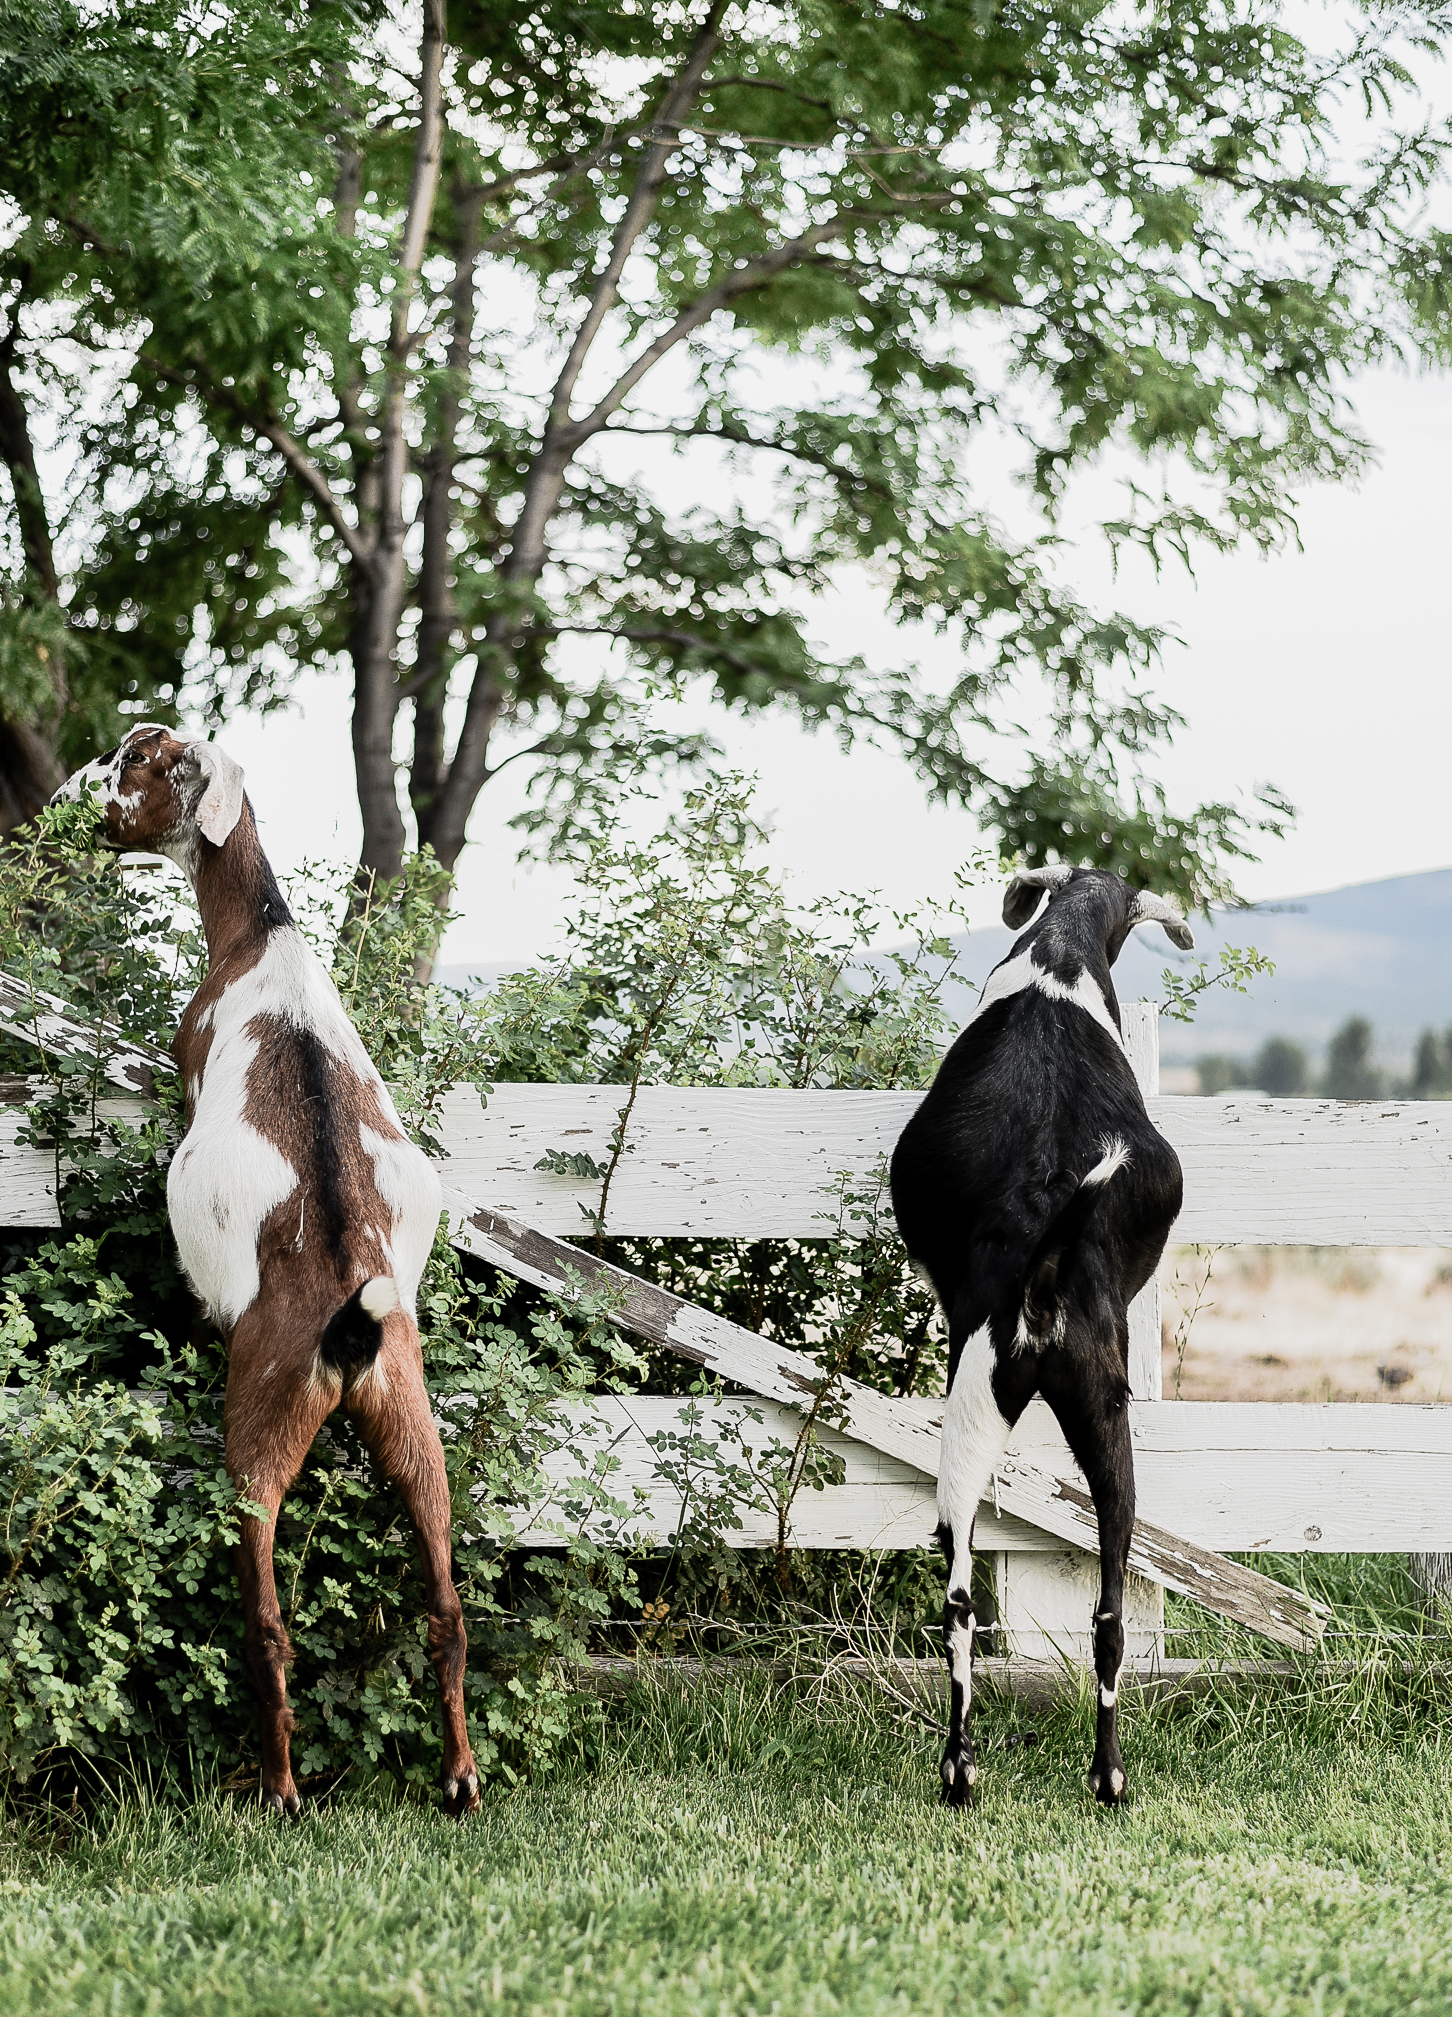 Caring for Goats: 15 Things I Wish I Knew Before Getting